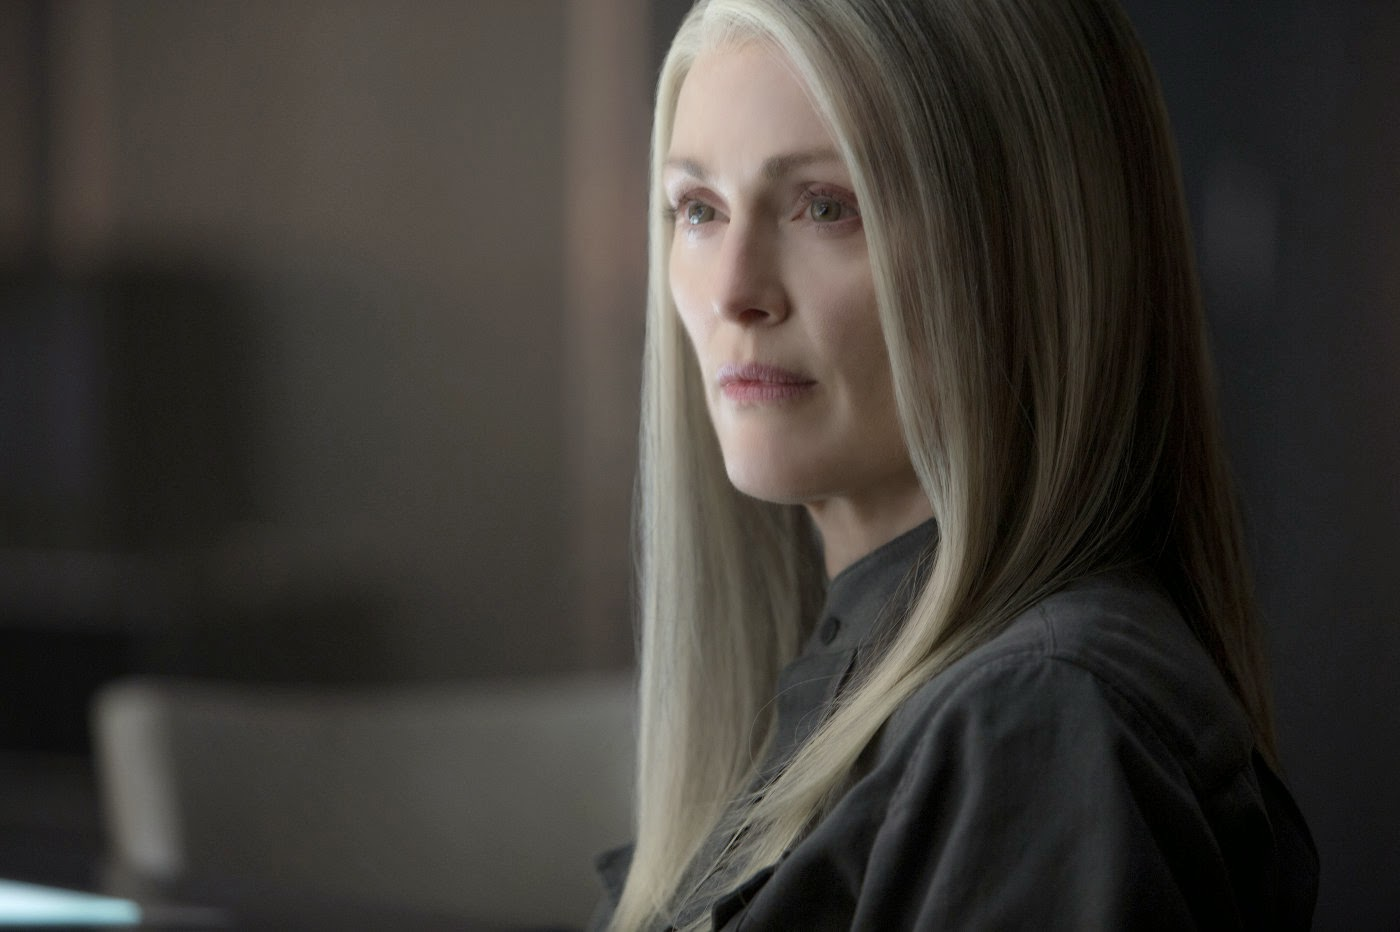 Julianne Moore in The Hunger Games: Mockingjay part 1